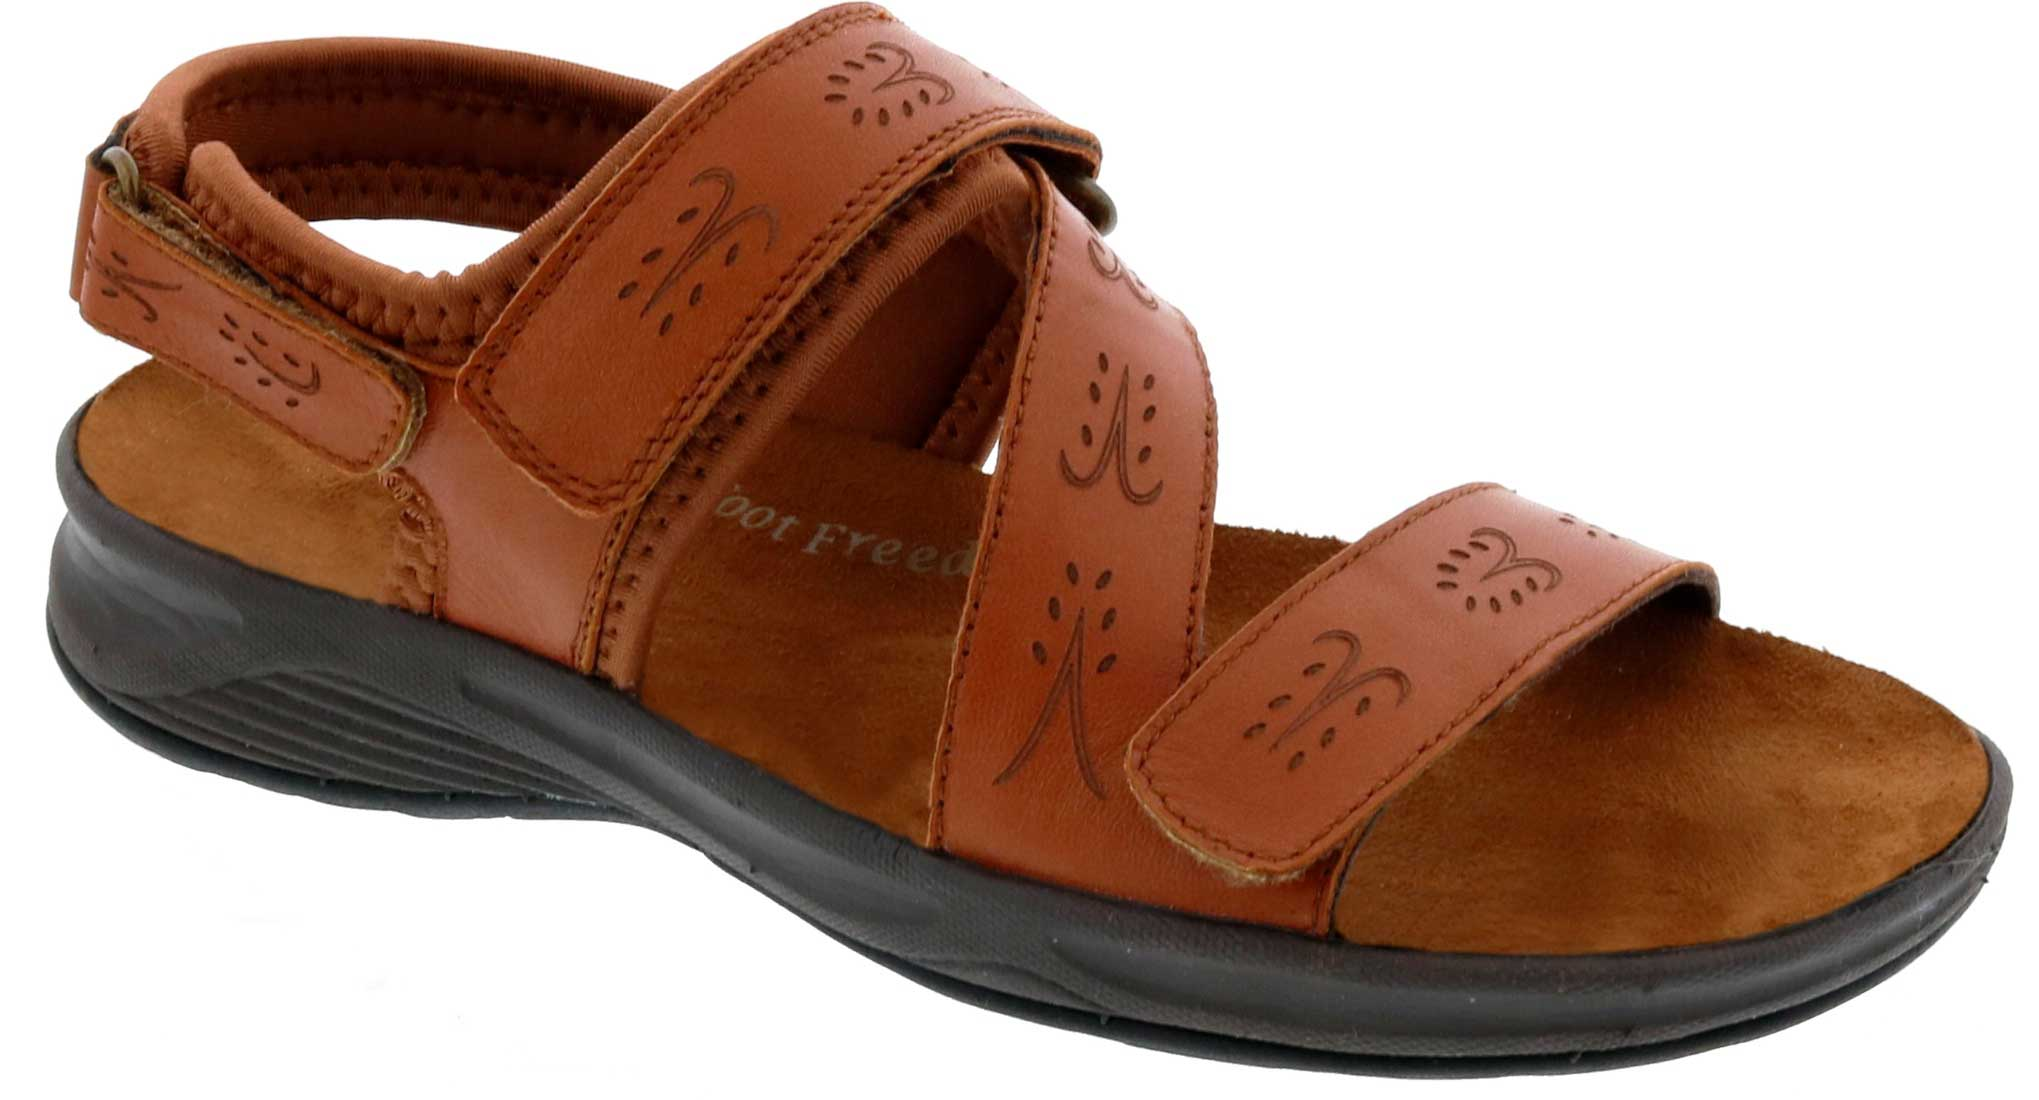 bcd3a12c5b2475 Drew Shoes Olympia Women s Therapeutic Diabetic Extra Depth Sandal ...